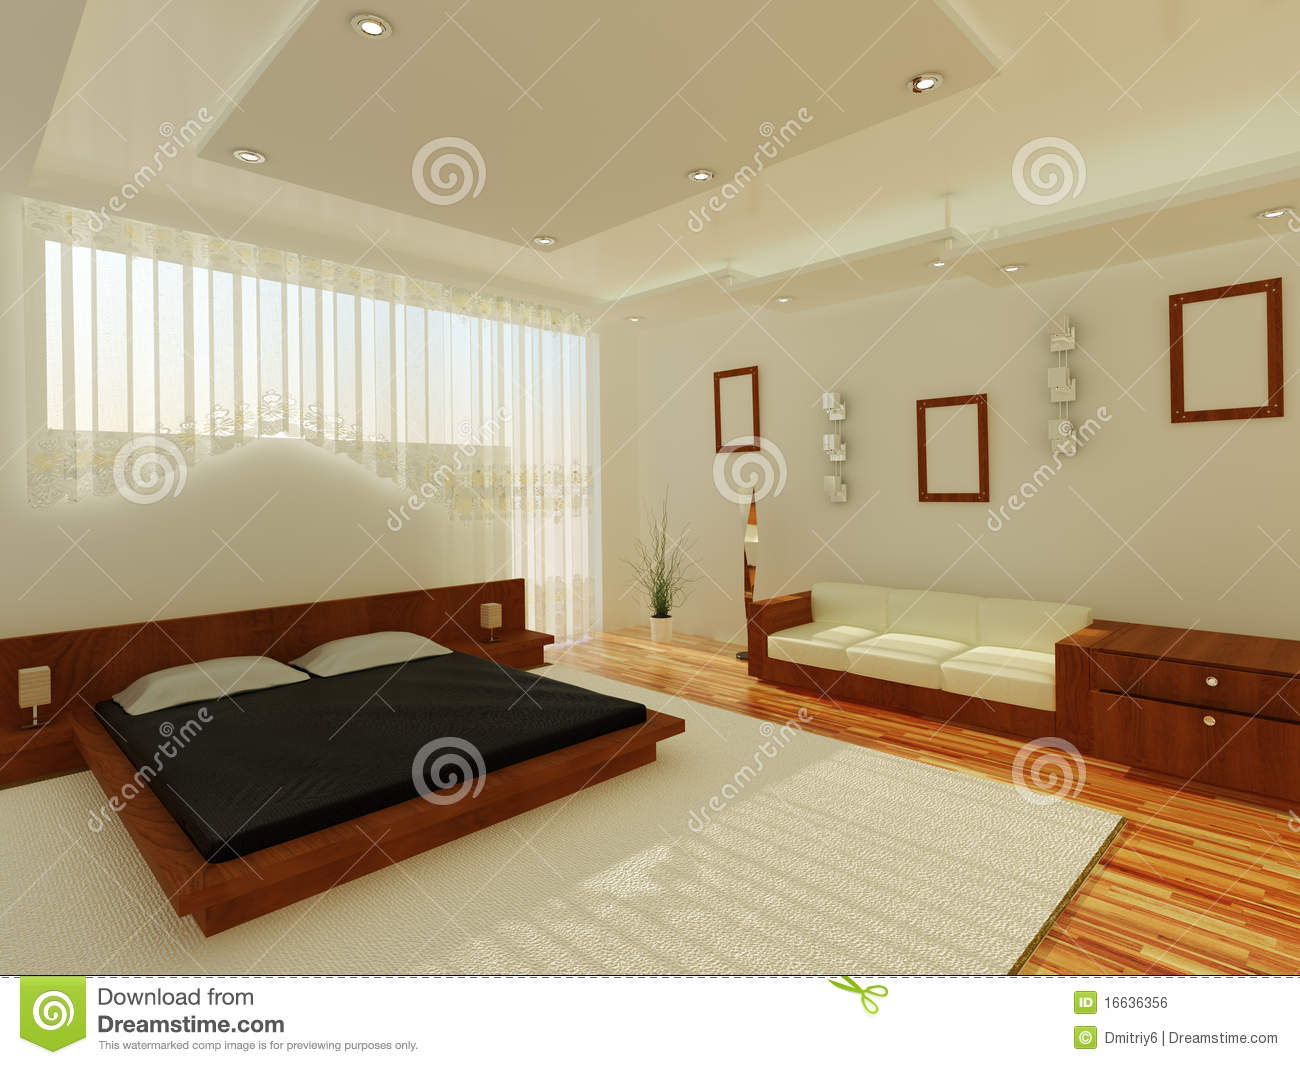 Interior of a sleeping room royalty free stock image for Sleeping room interior design